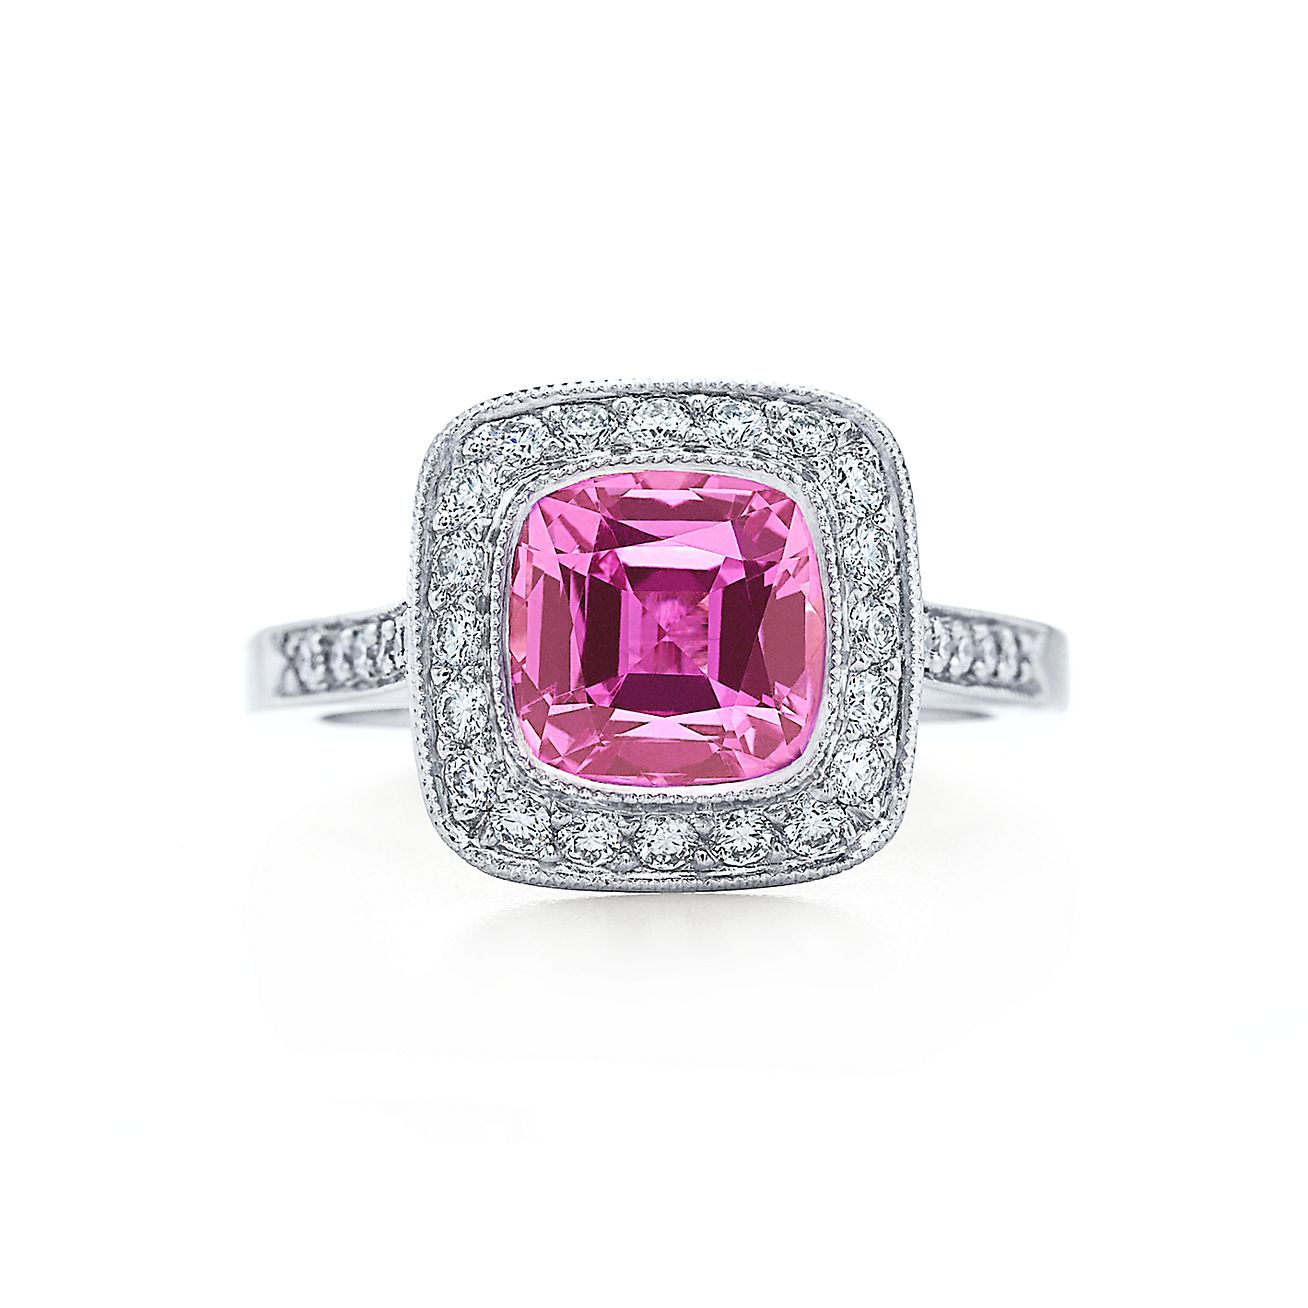 Tiffany Legacy Collection™ ring with a pink sapphire and diamonds in platinum